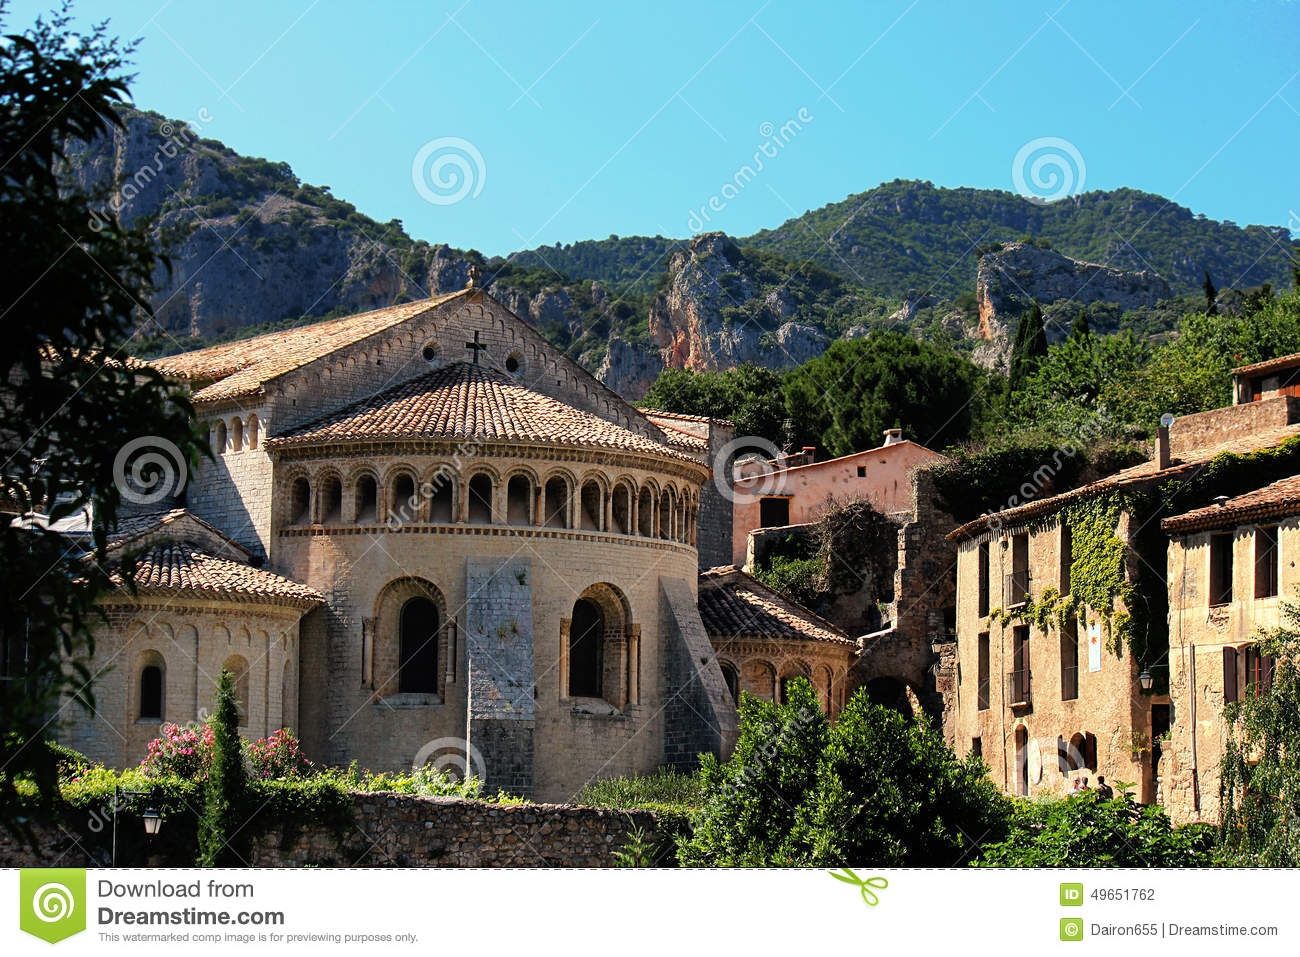 Saint Guilhem le desert church